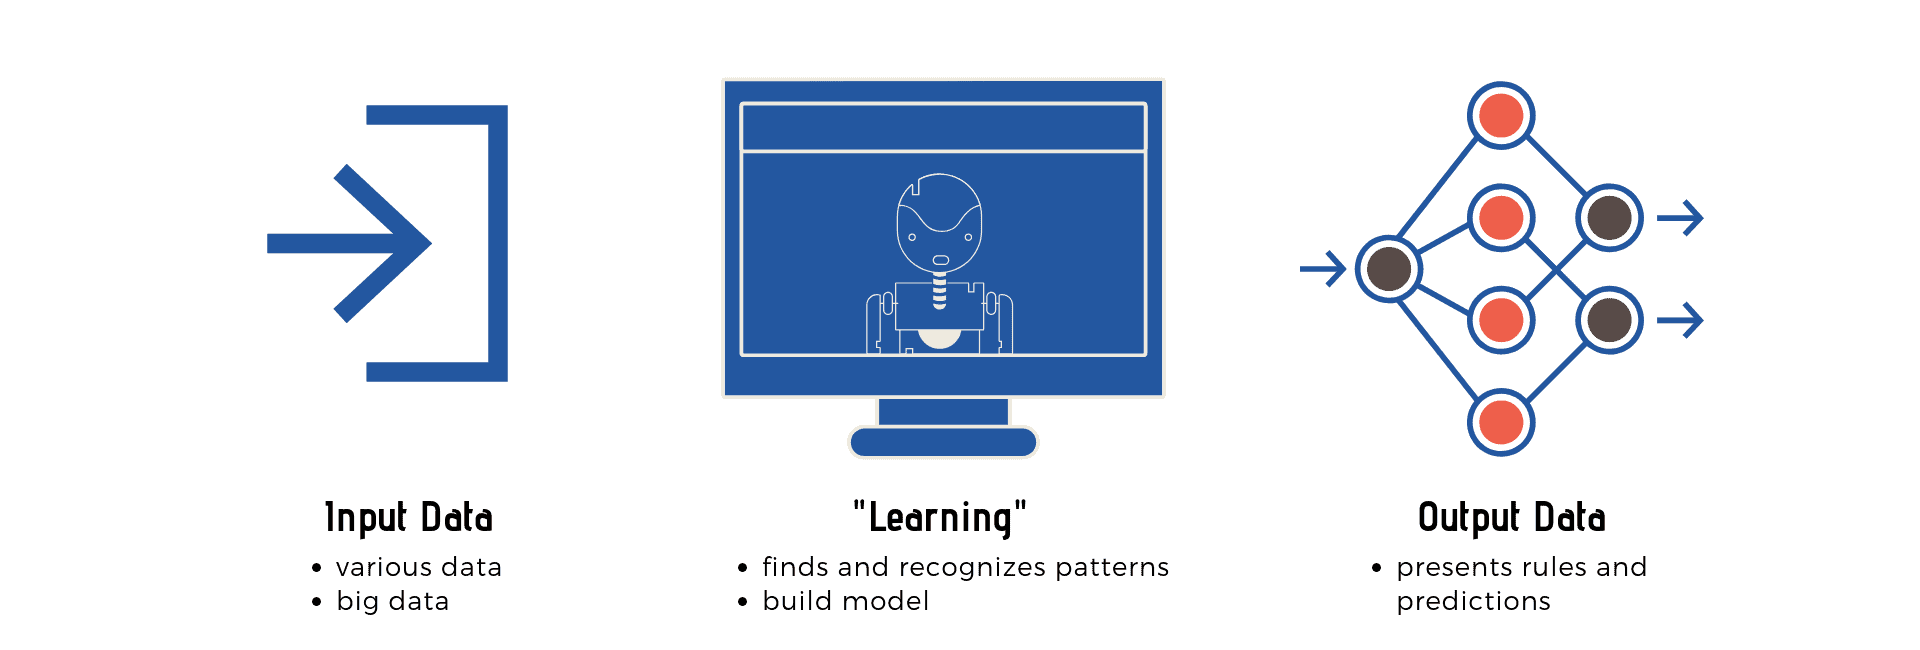 Running a Machine Learning Model